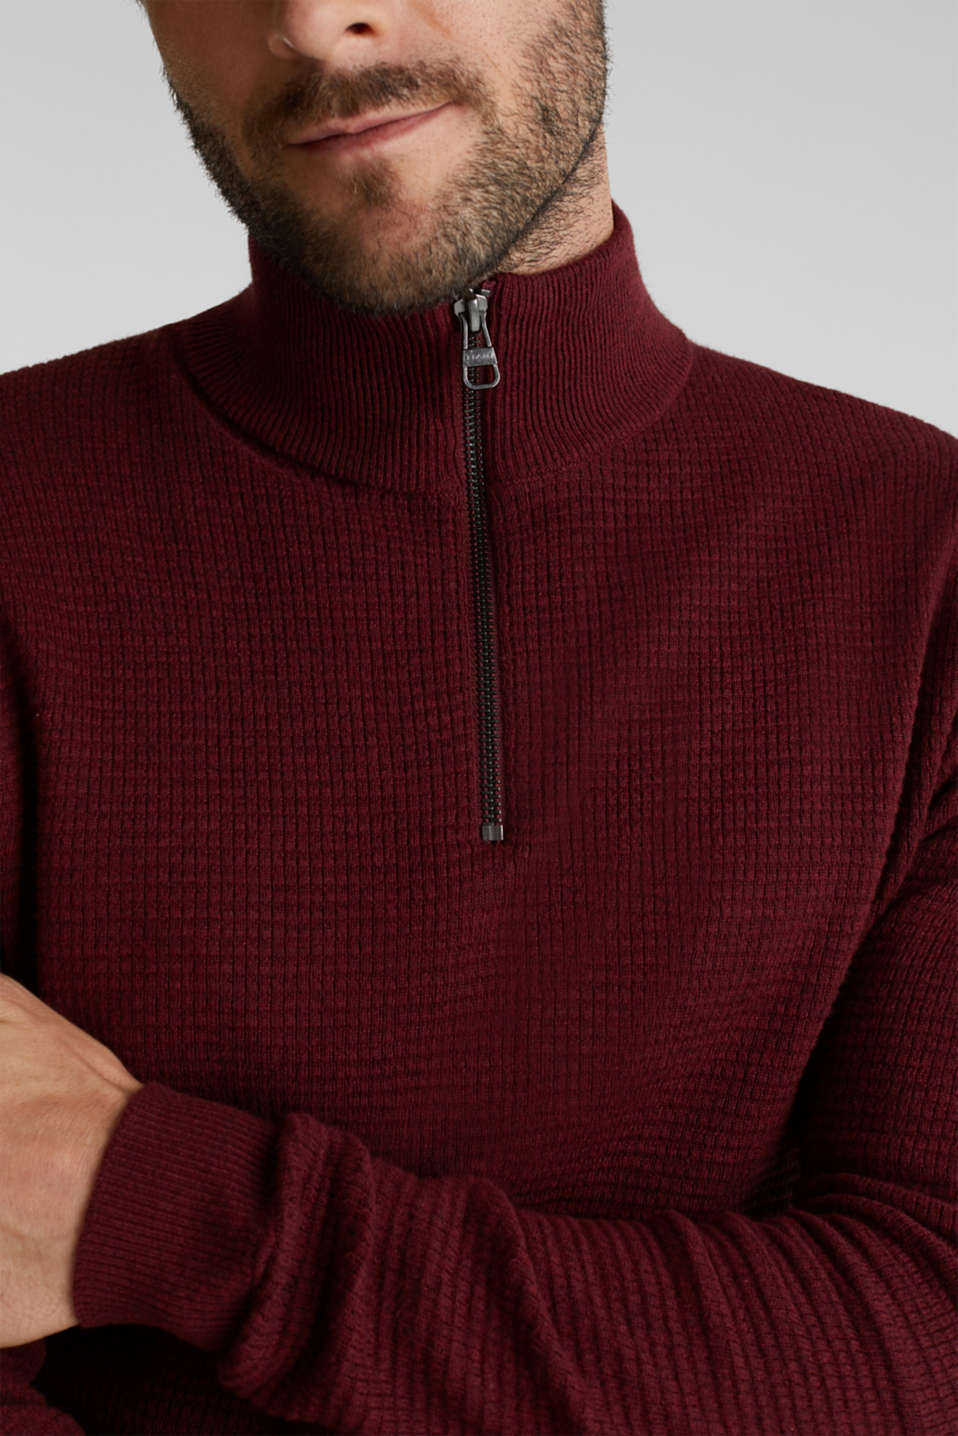 With cashmere: Textured knit jumper, DARK RED, detail image number 2